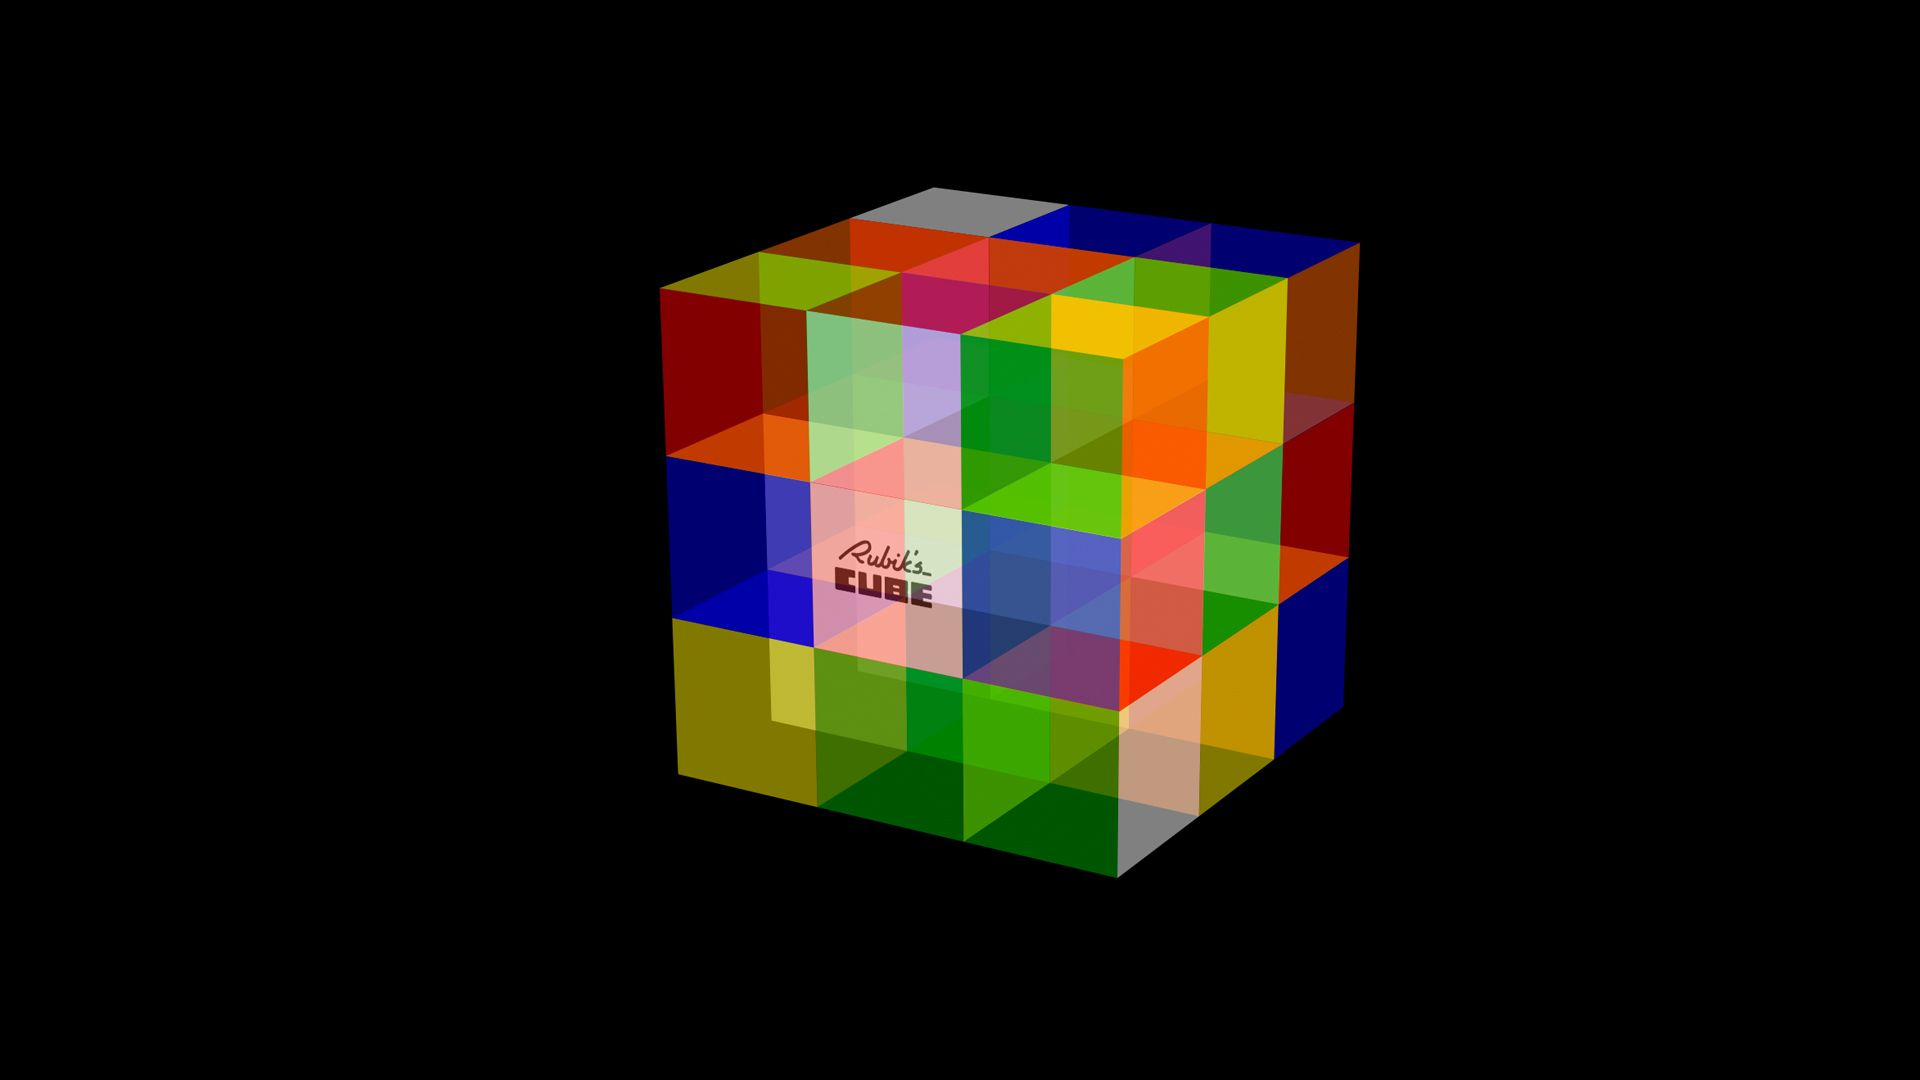 D Black Abstract Wallpapers Group Rubik In 2019